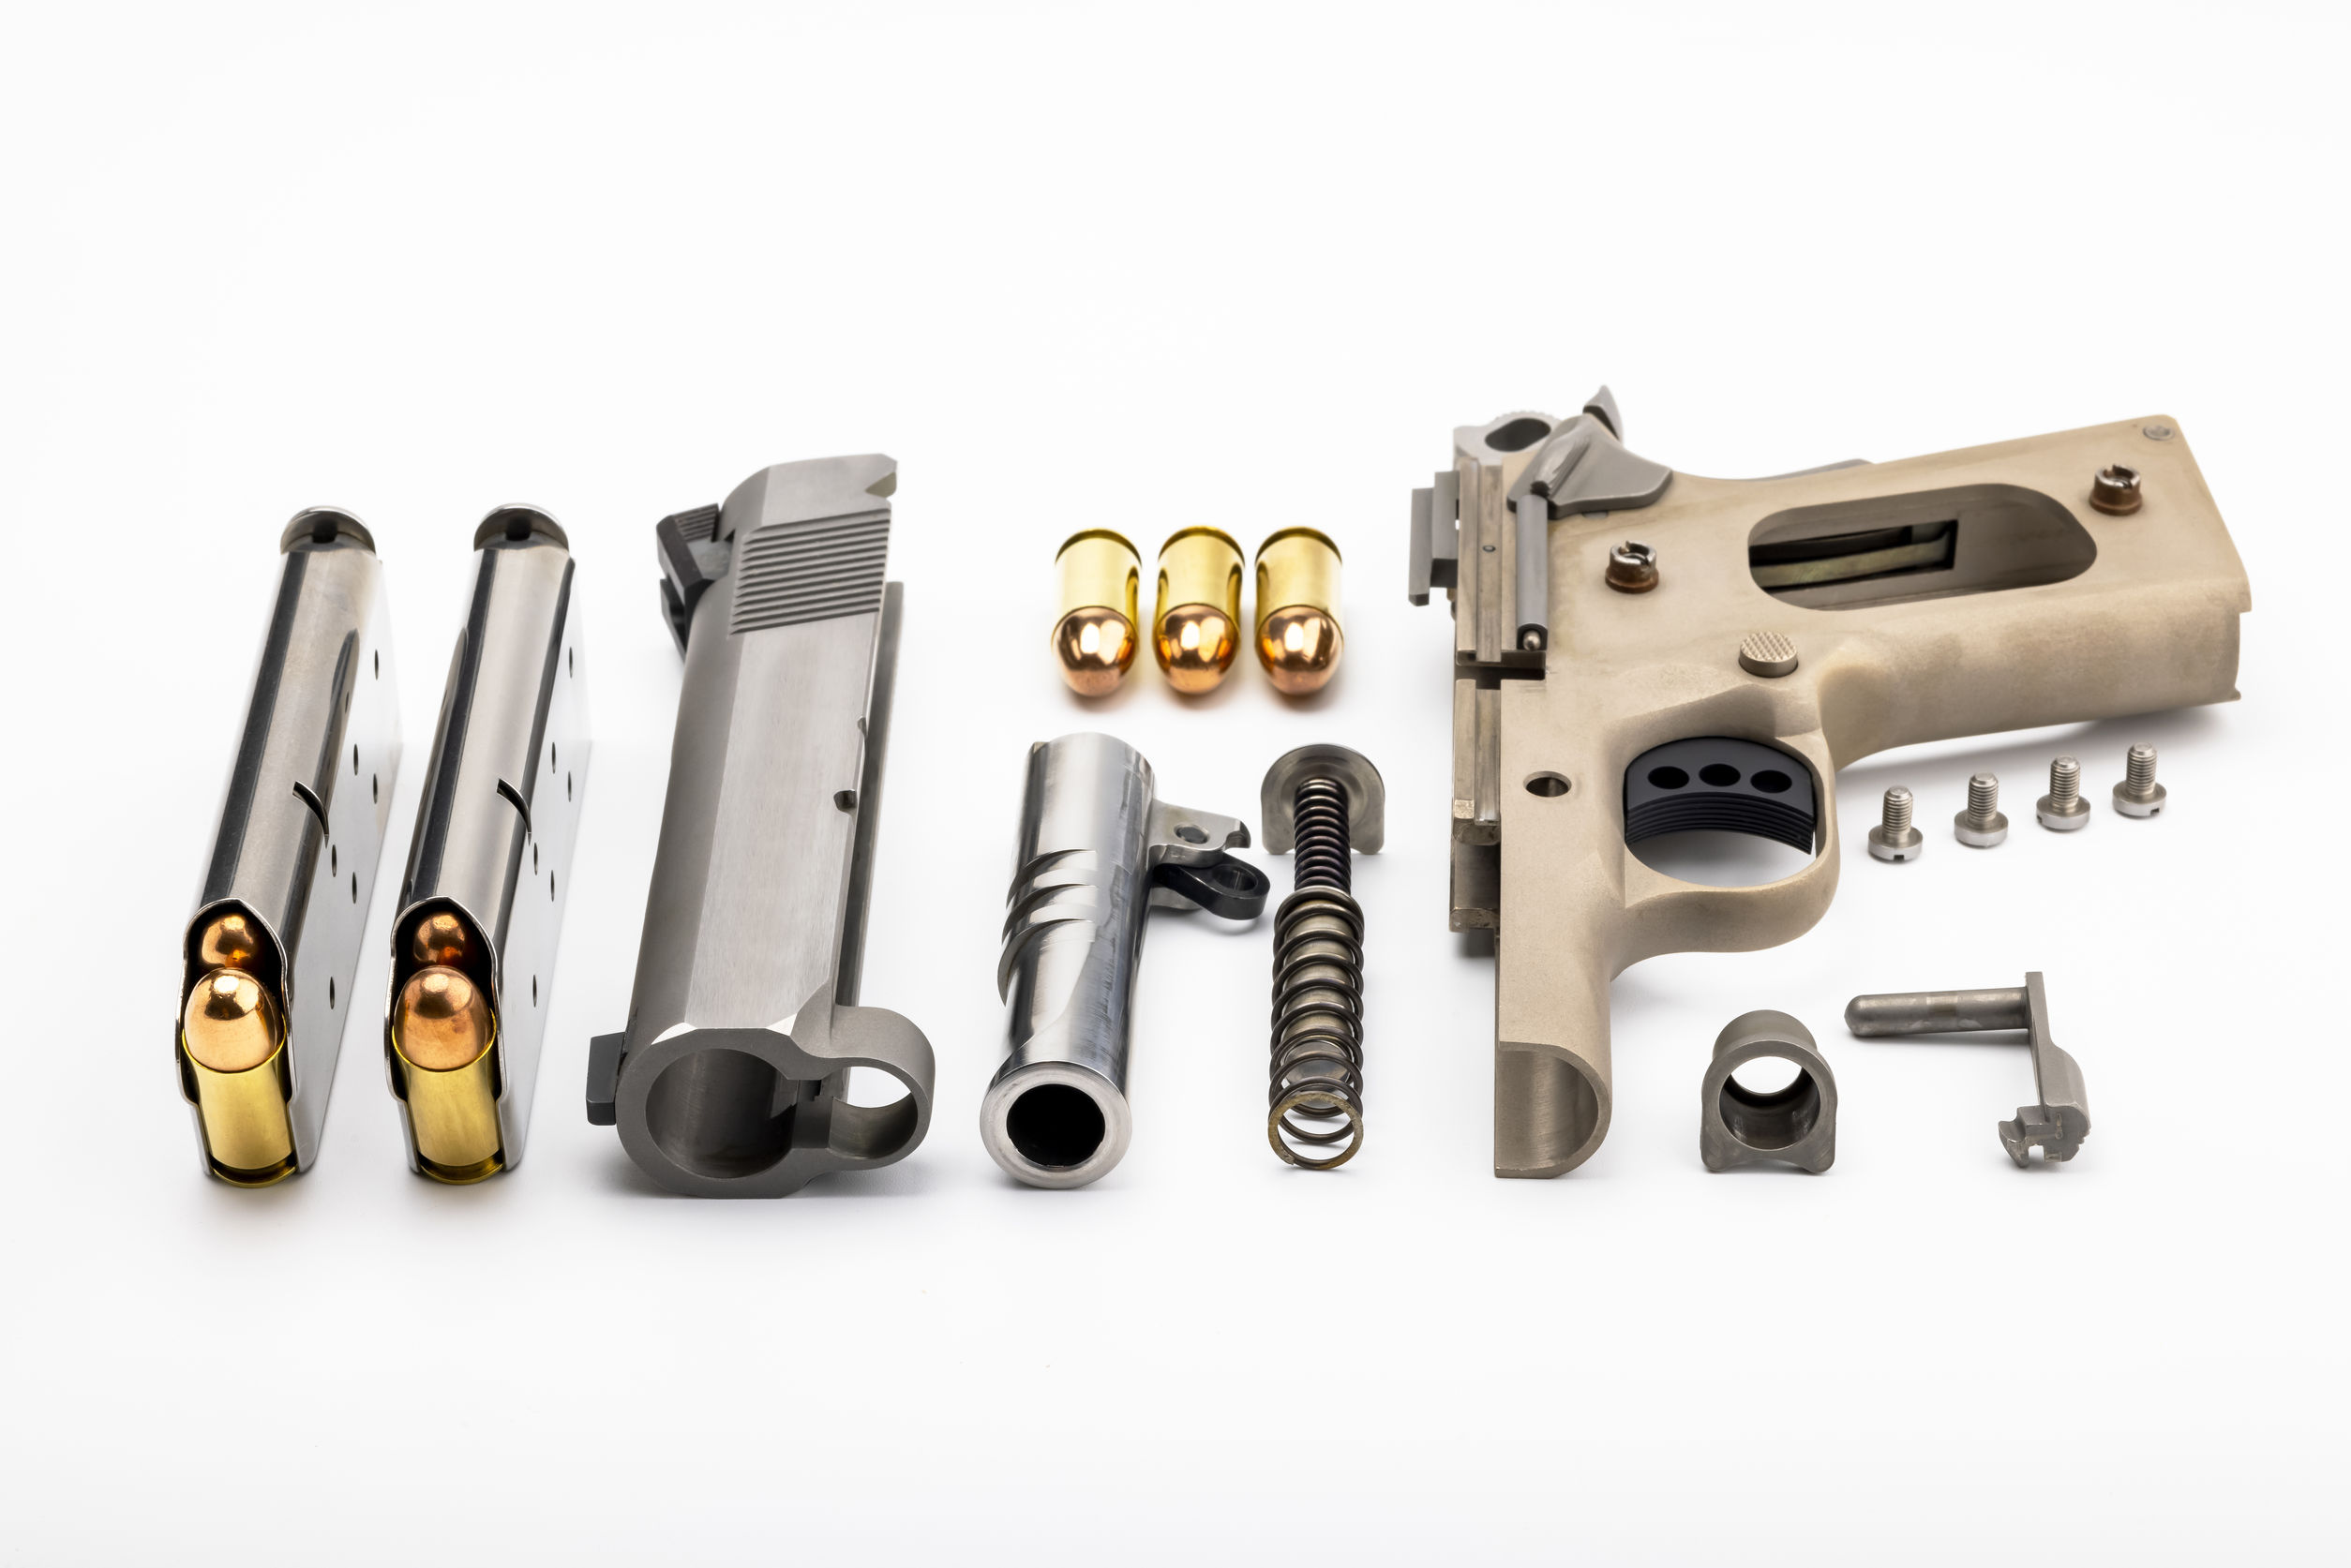 How Are Gun Parts Manufactured?